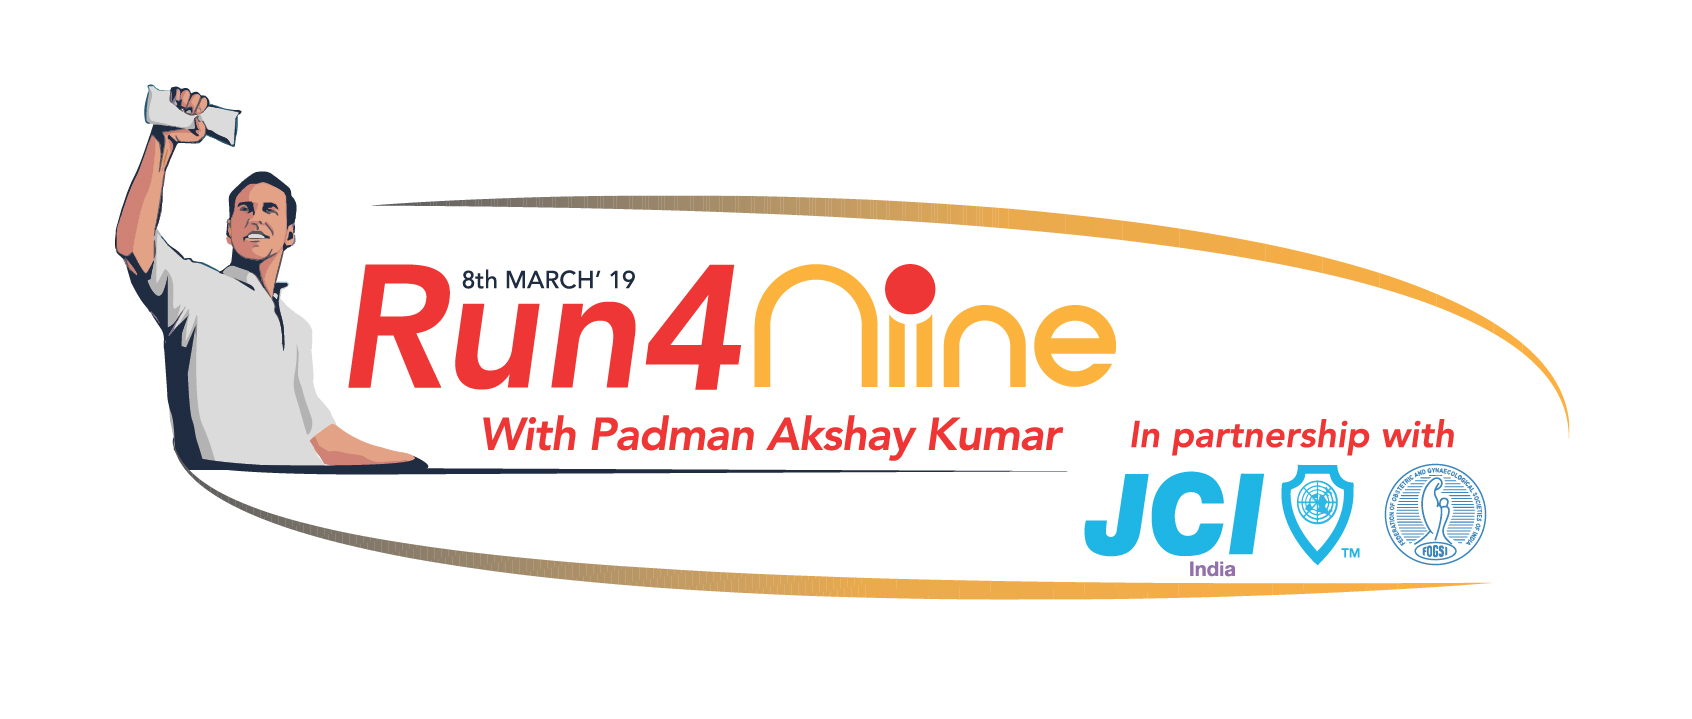 India runs with Period-Positive vision for Run4Niine – Sterling Media